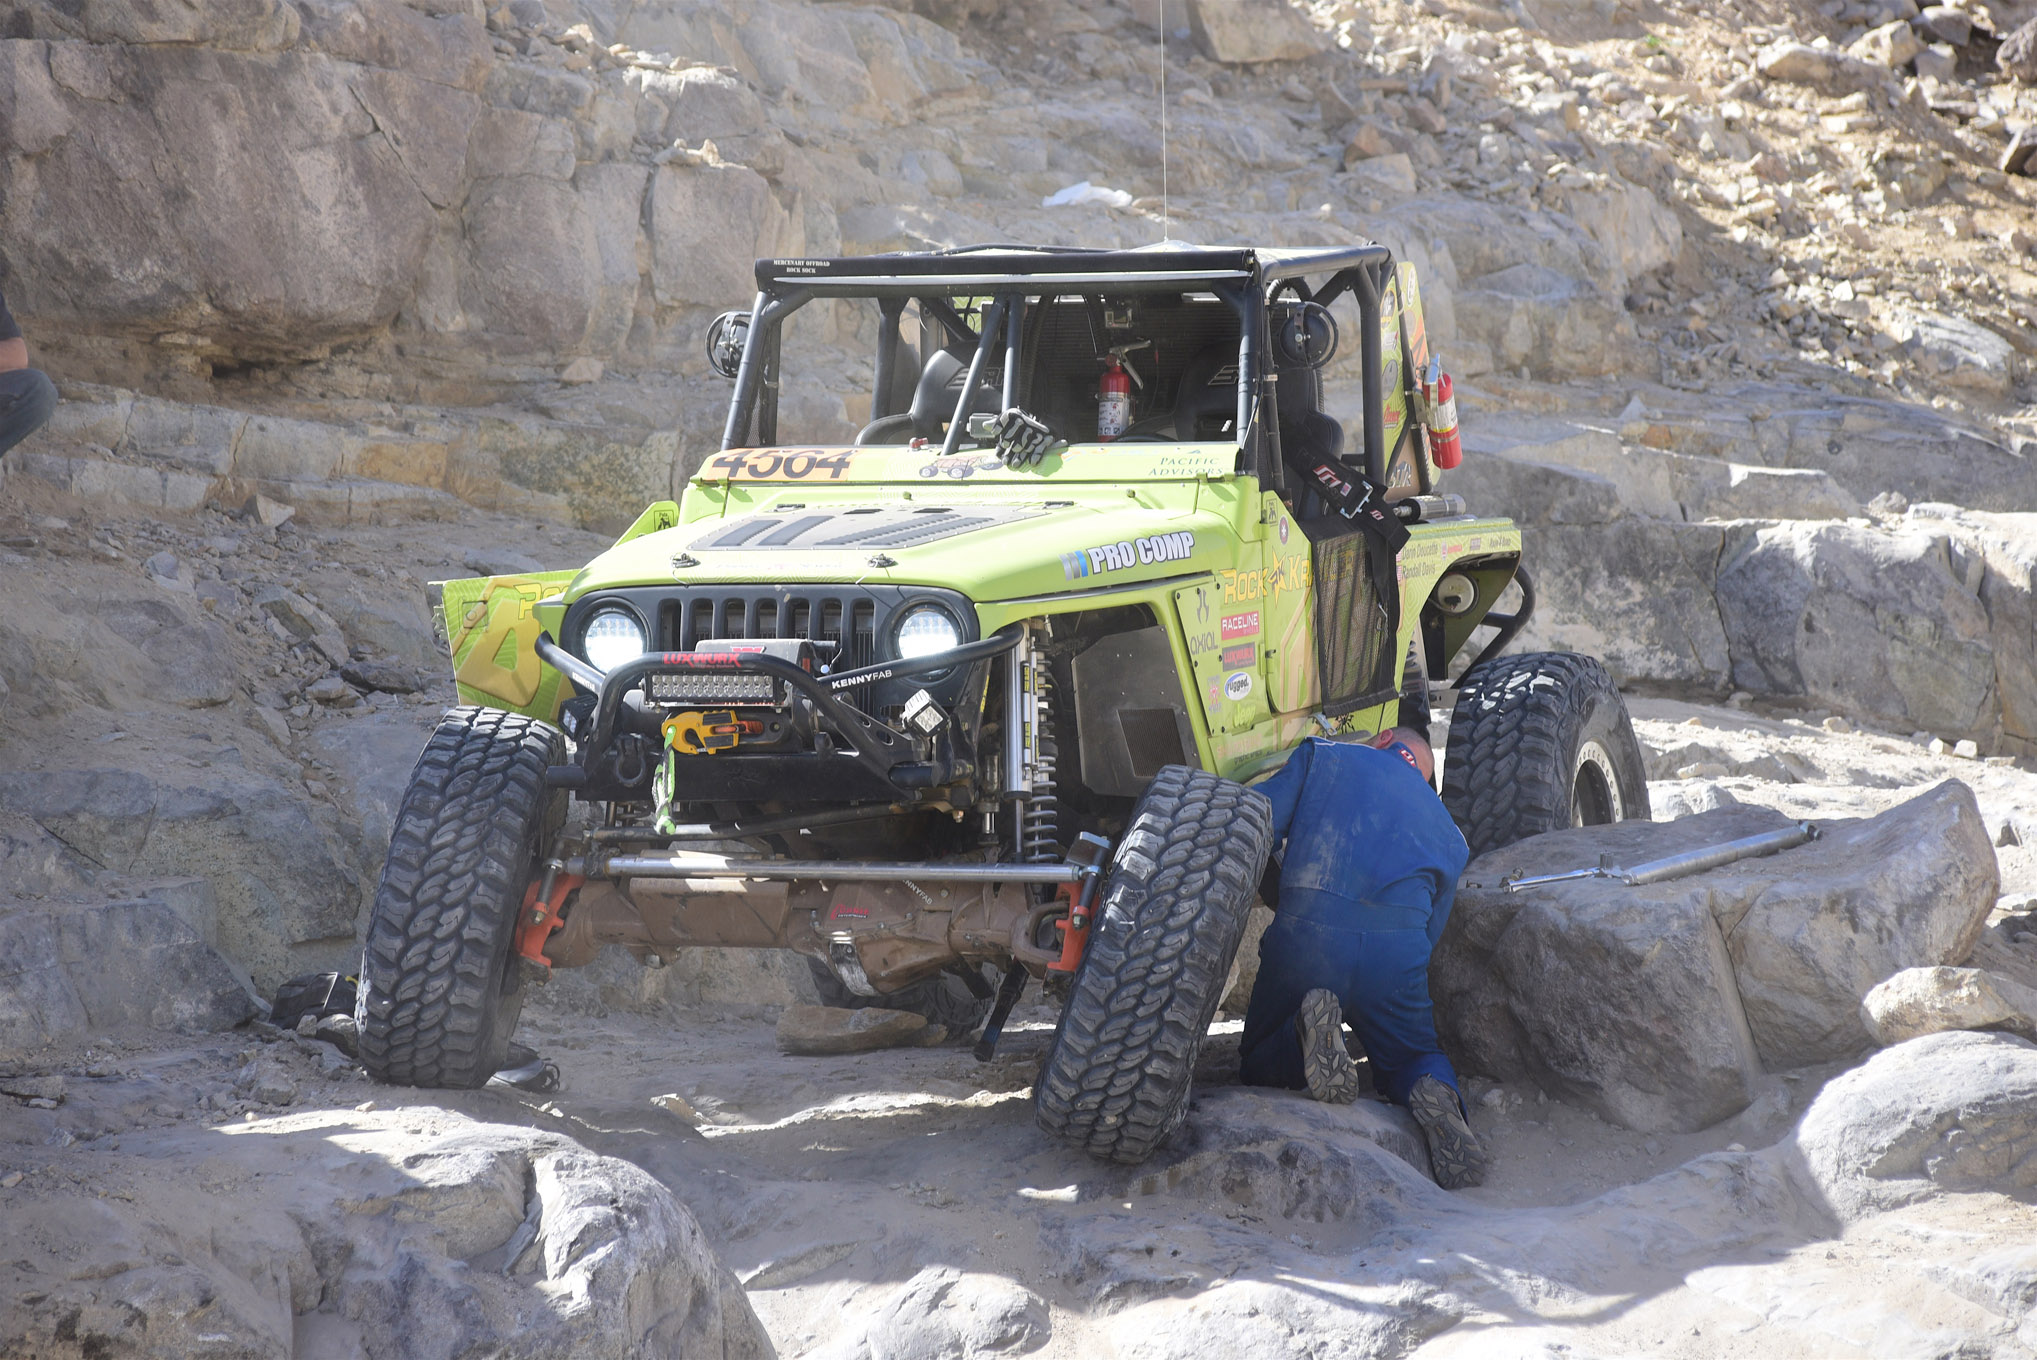 129 2017 king of the hammers koh racecar action on course stuart bourdon photographer